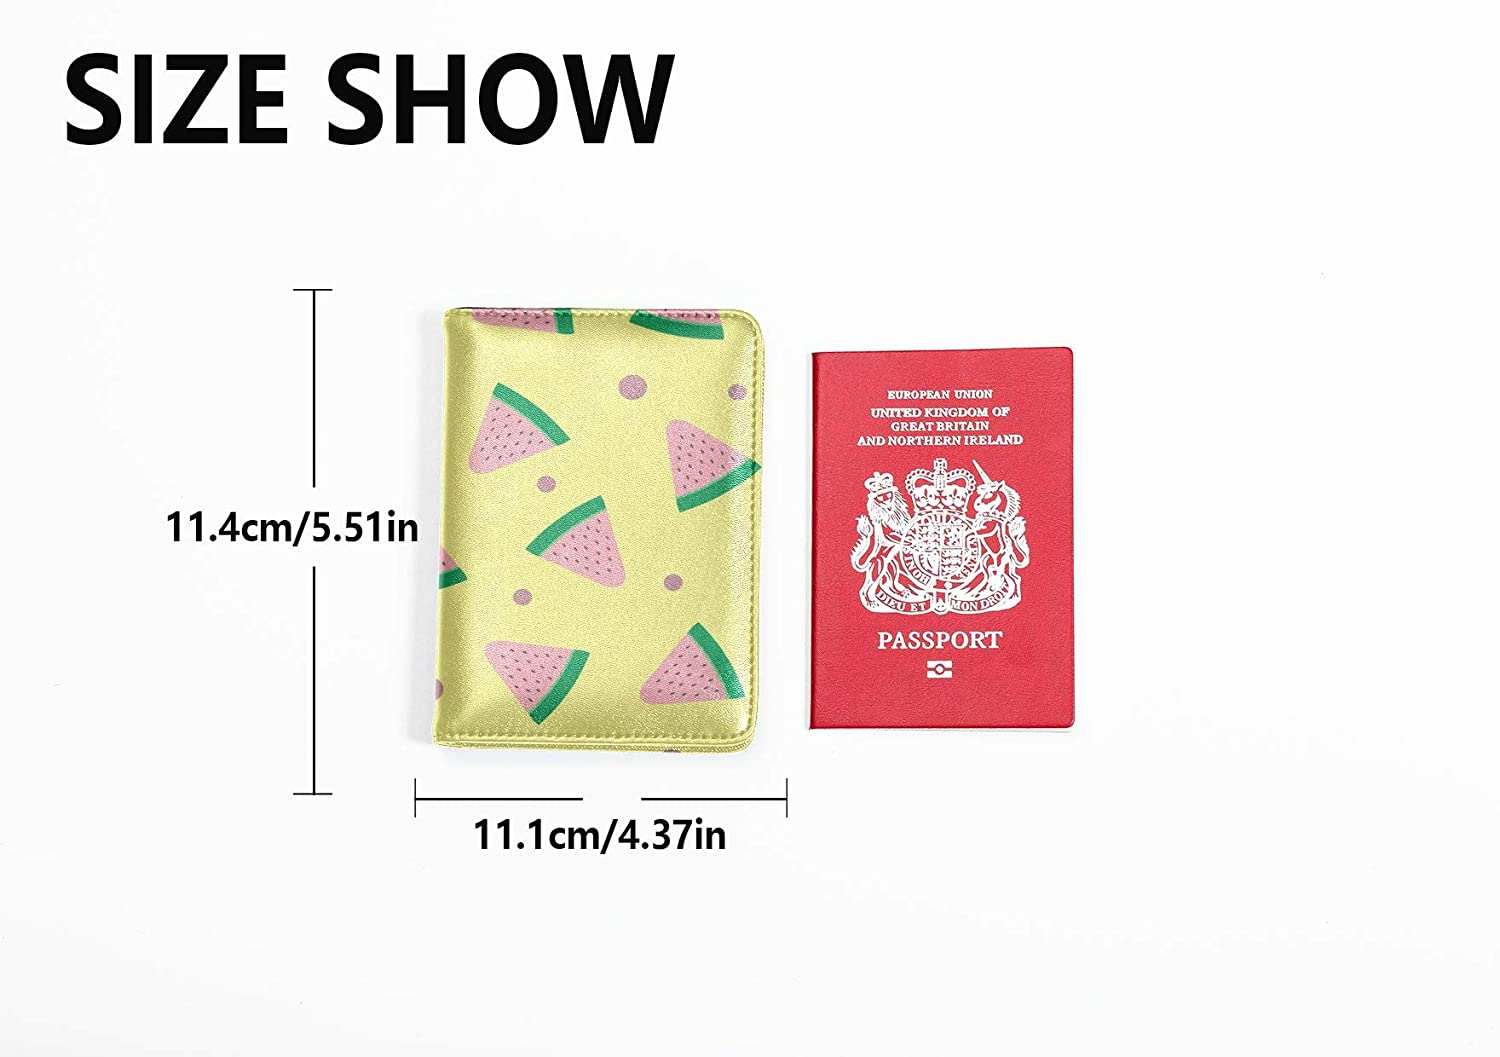 Passport Case For Women Fashion Cute Cartoon Fruit Watermelon Passport Covers For Men Multi Purpose Print Hard Case Passport Holder Travel Wallets For Unisex 5.51x4.37 Inch